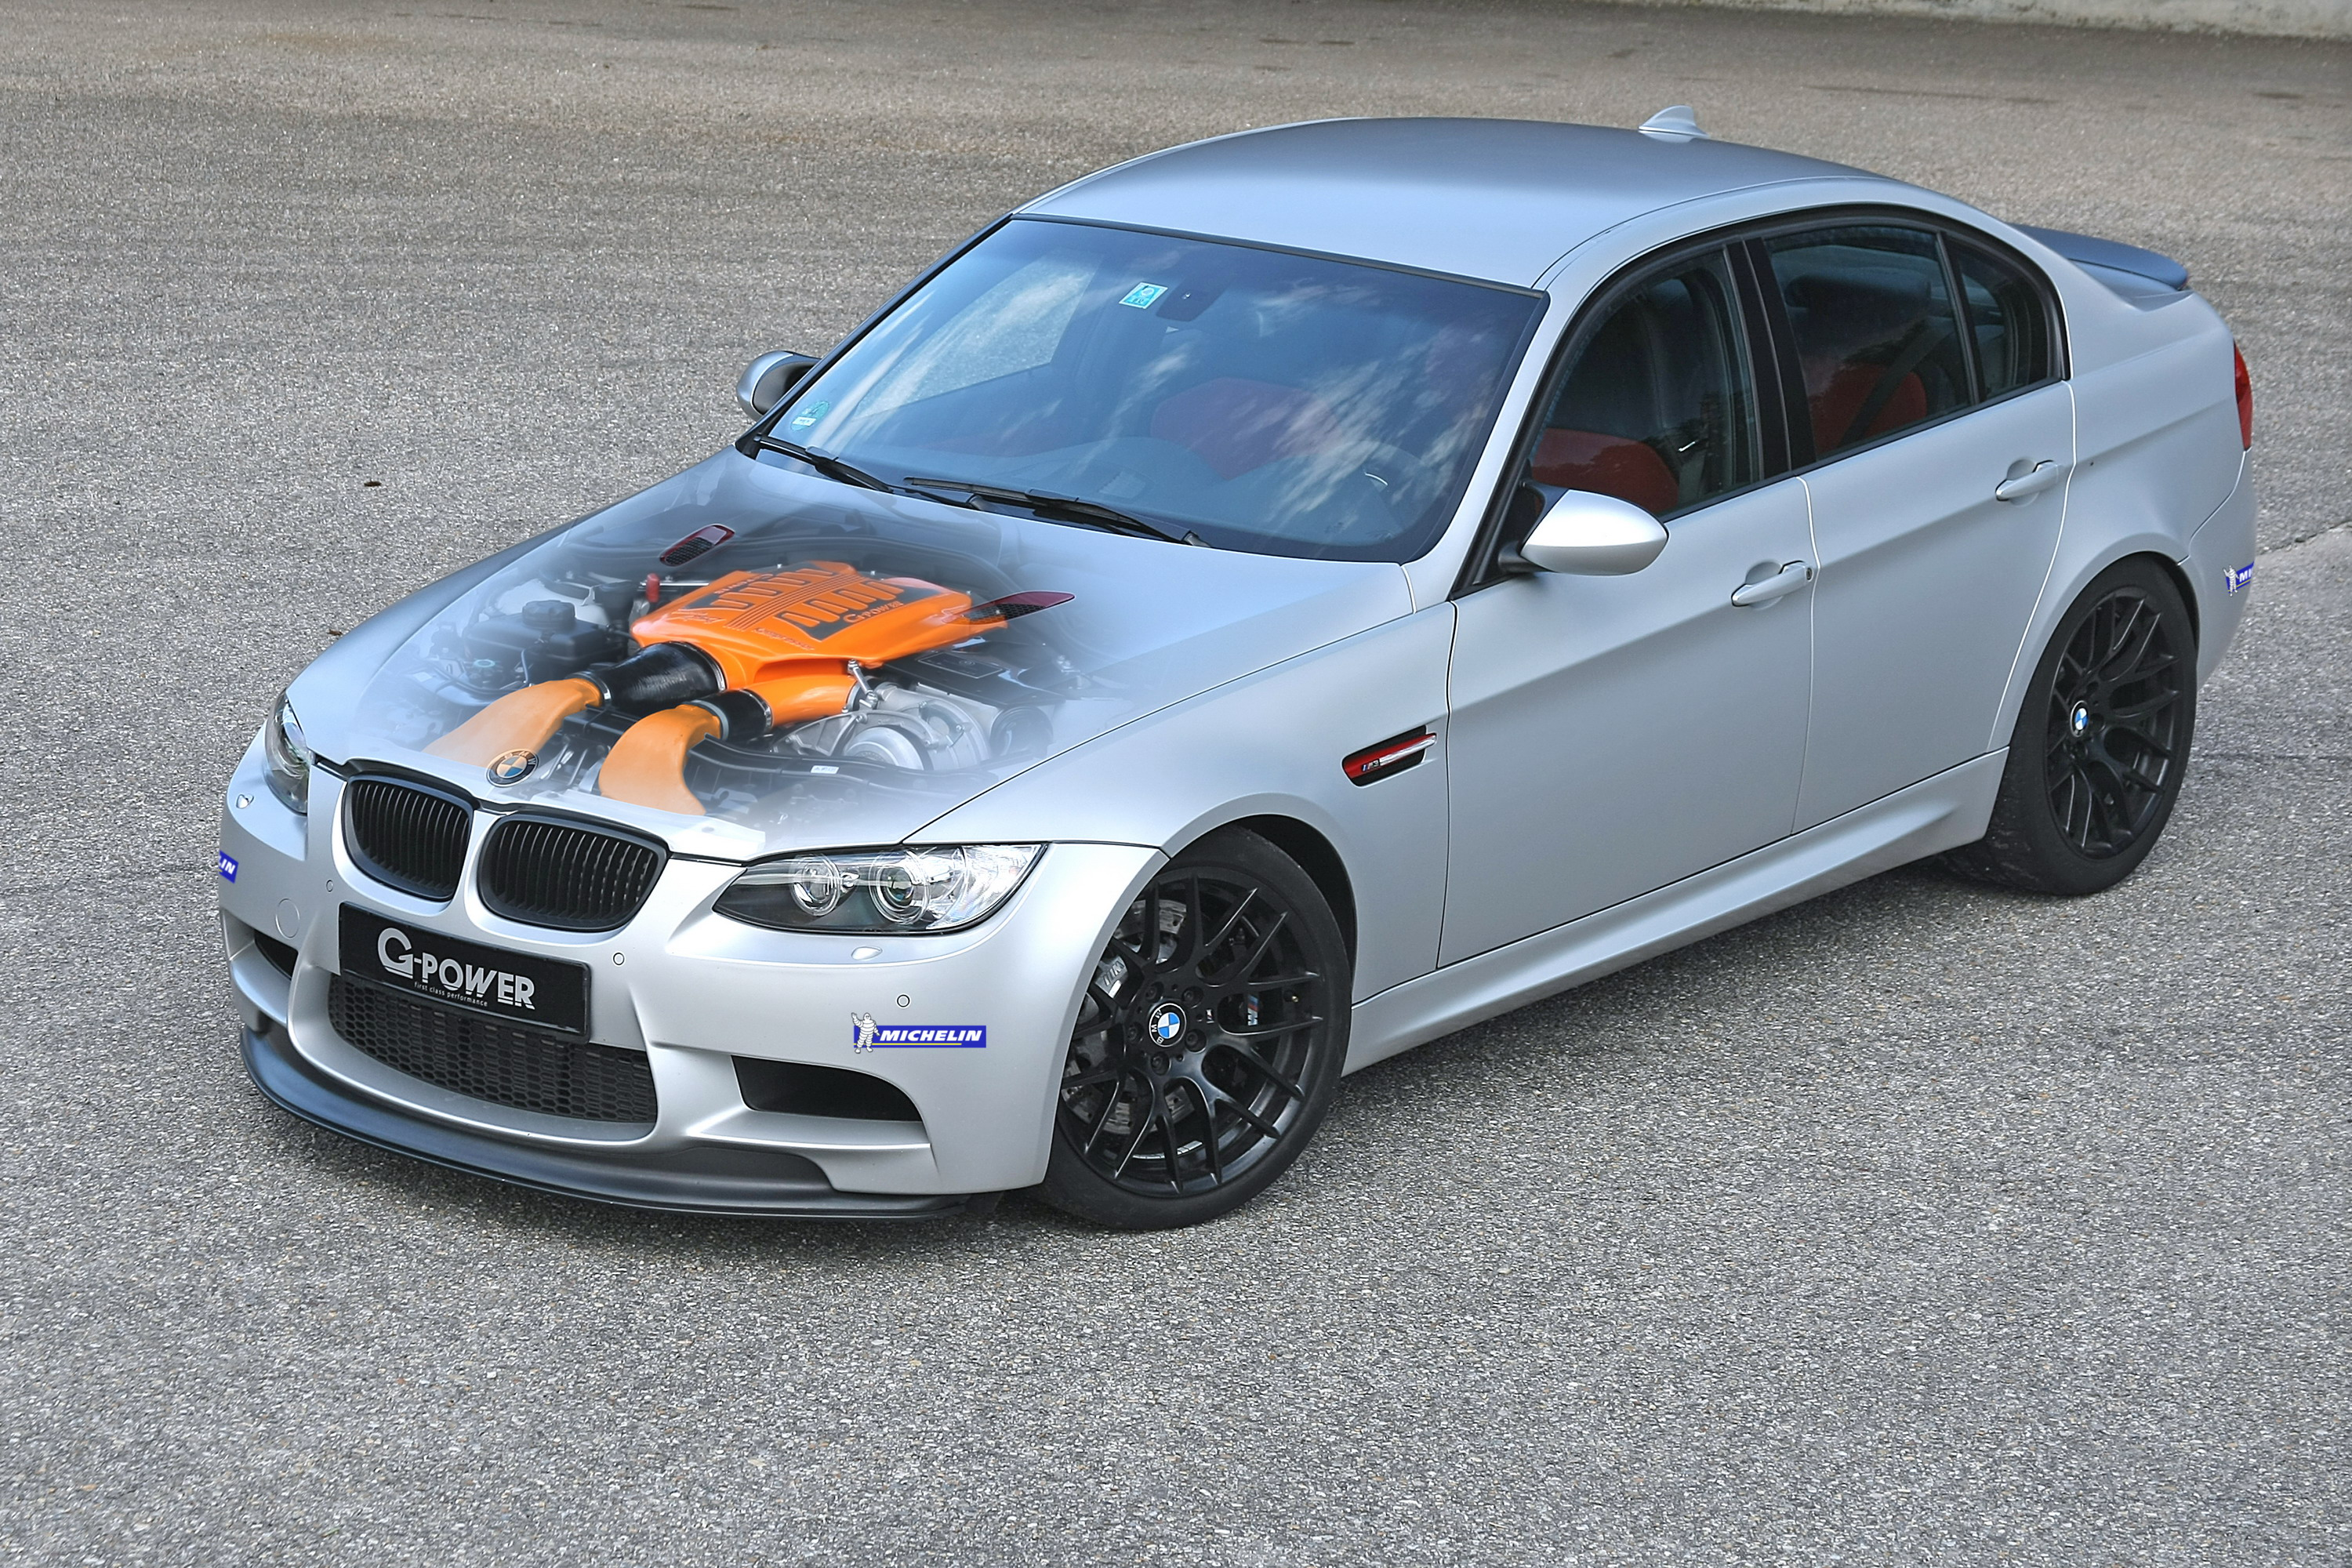 2012 BMW M3 CRT By G-Power Review - Top Speed